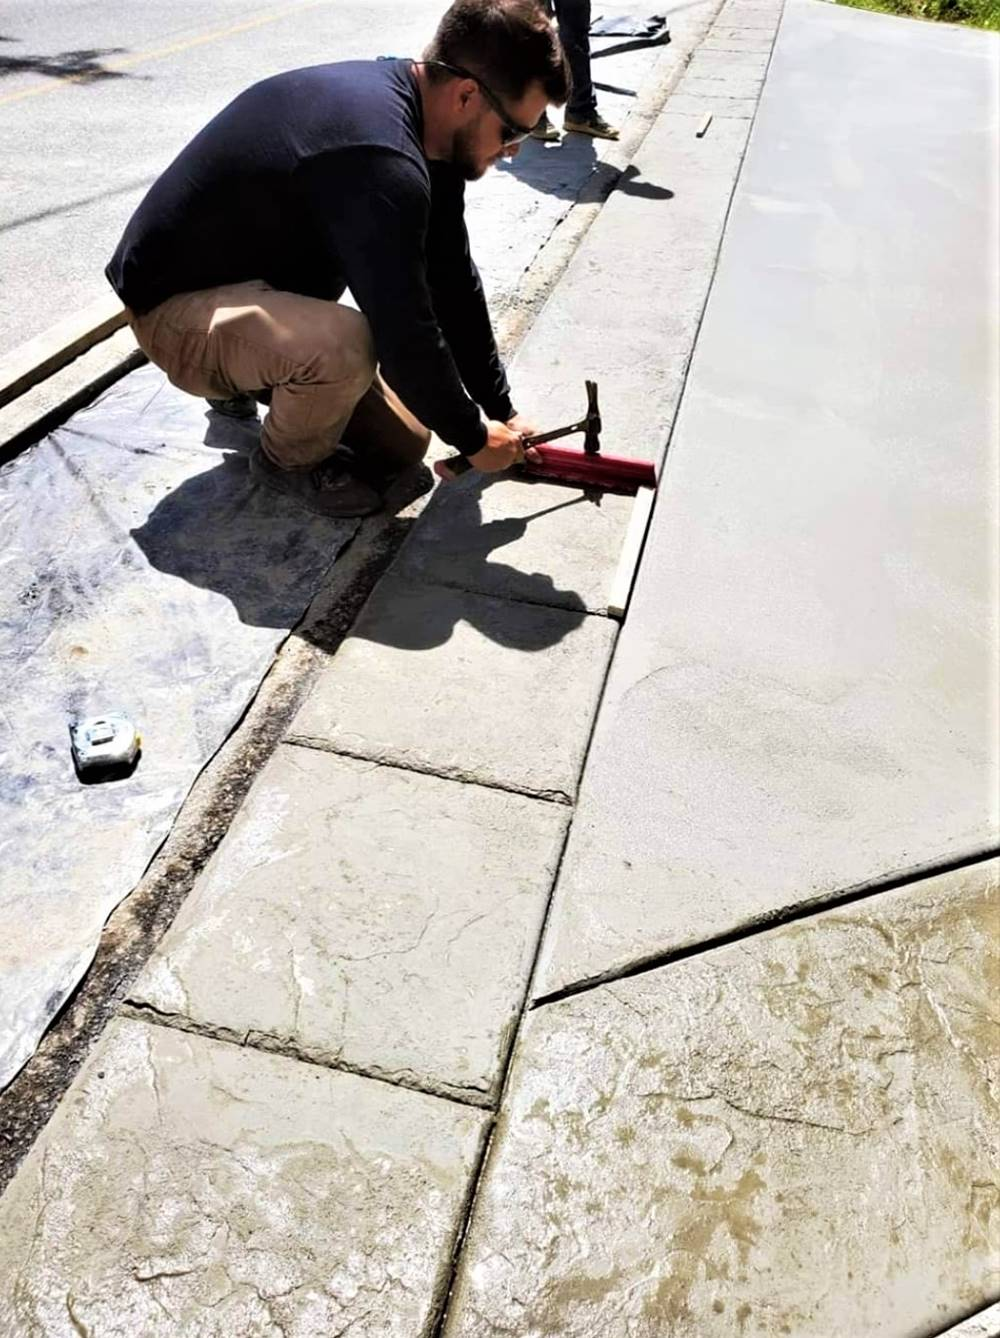 chiseling out the grout lines of a concrete driveway.